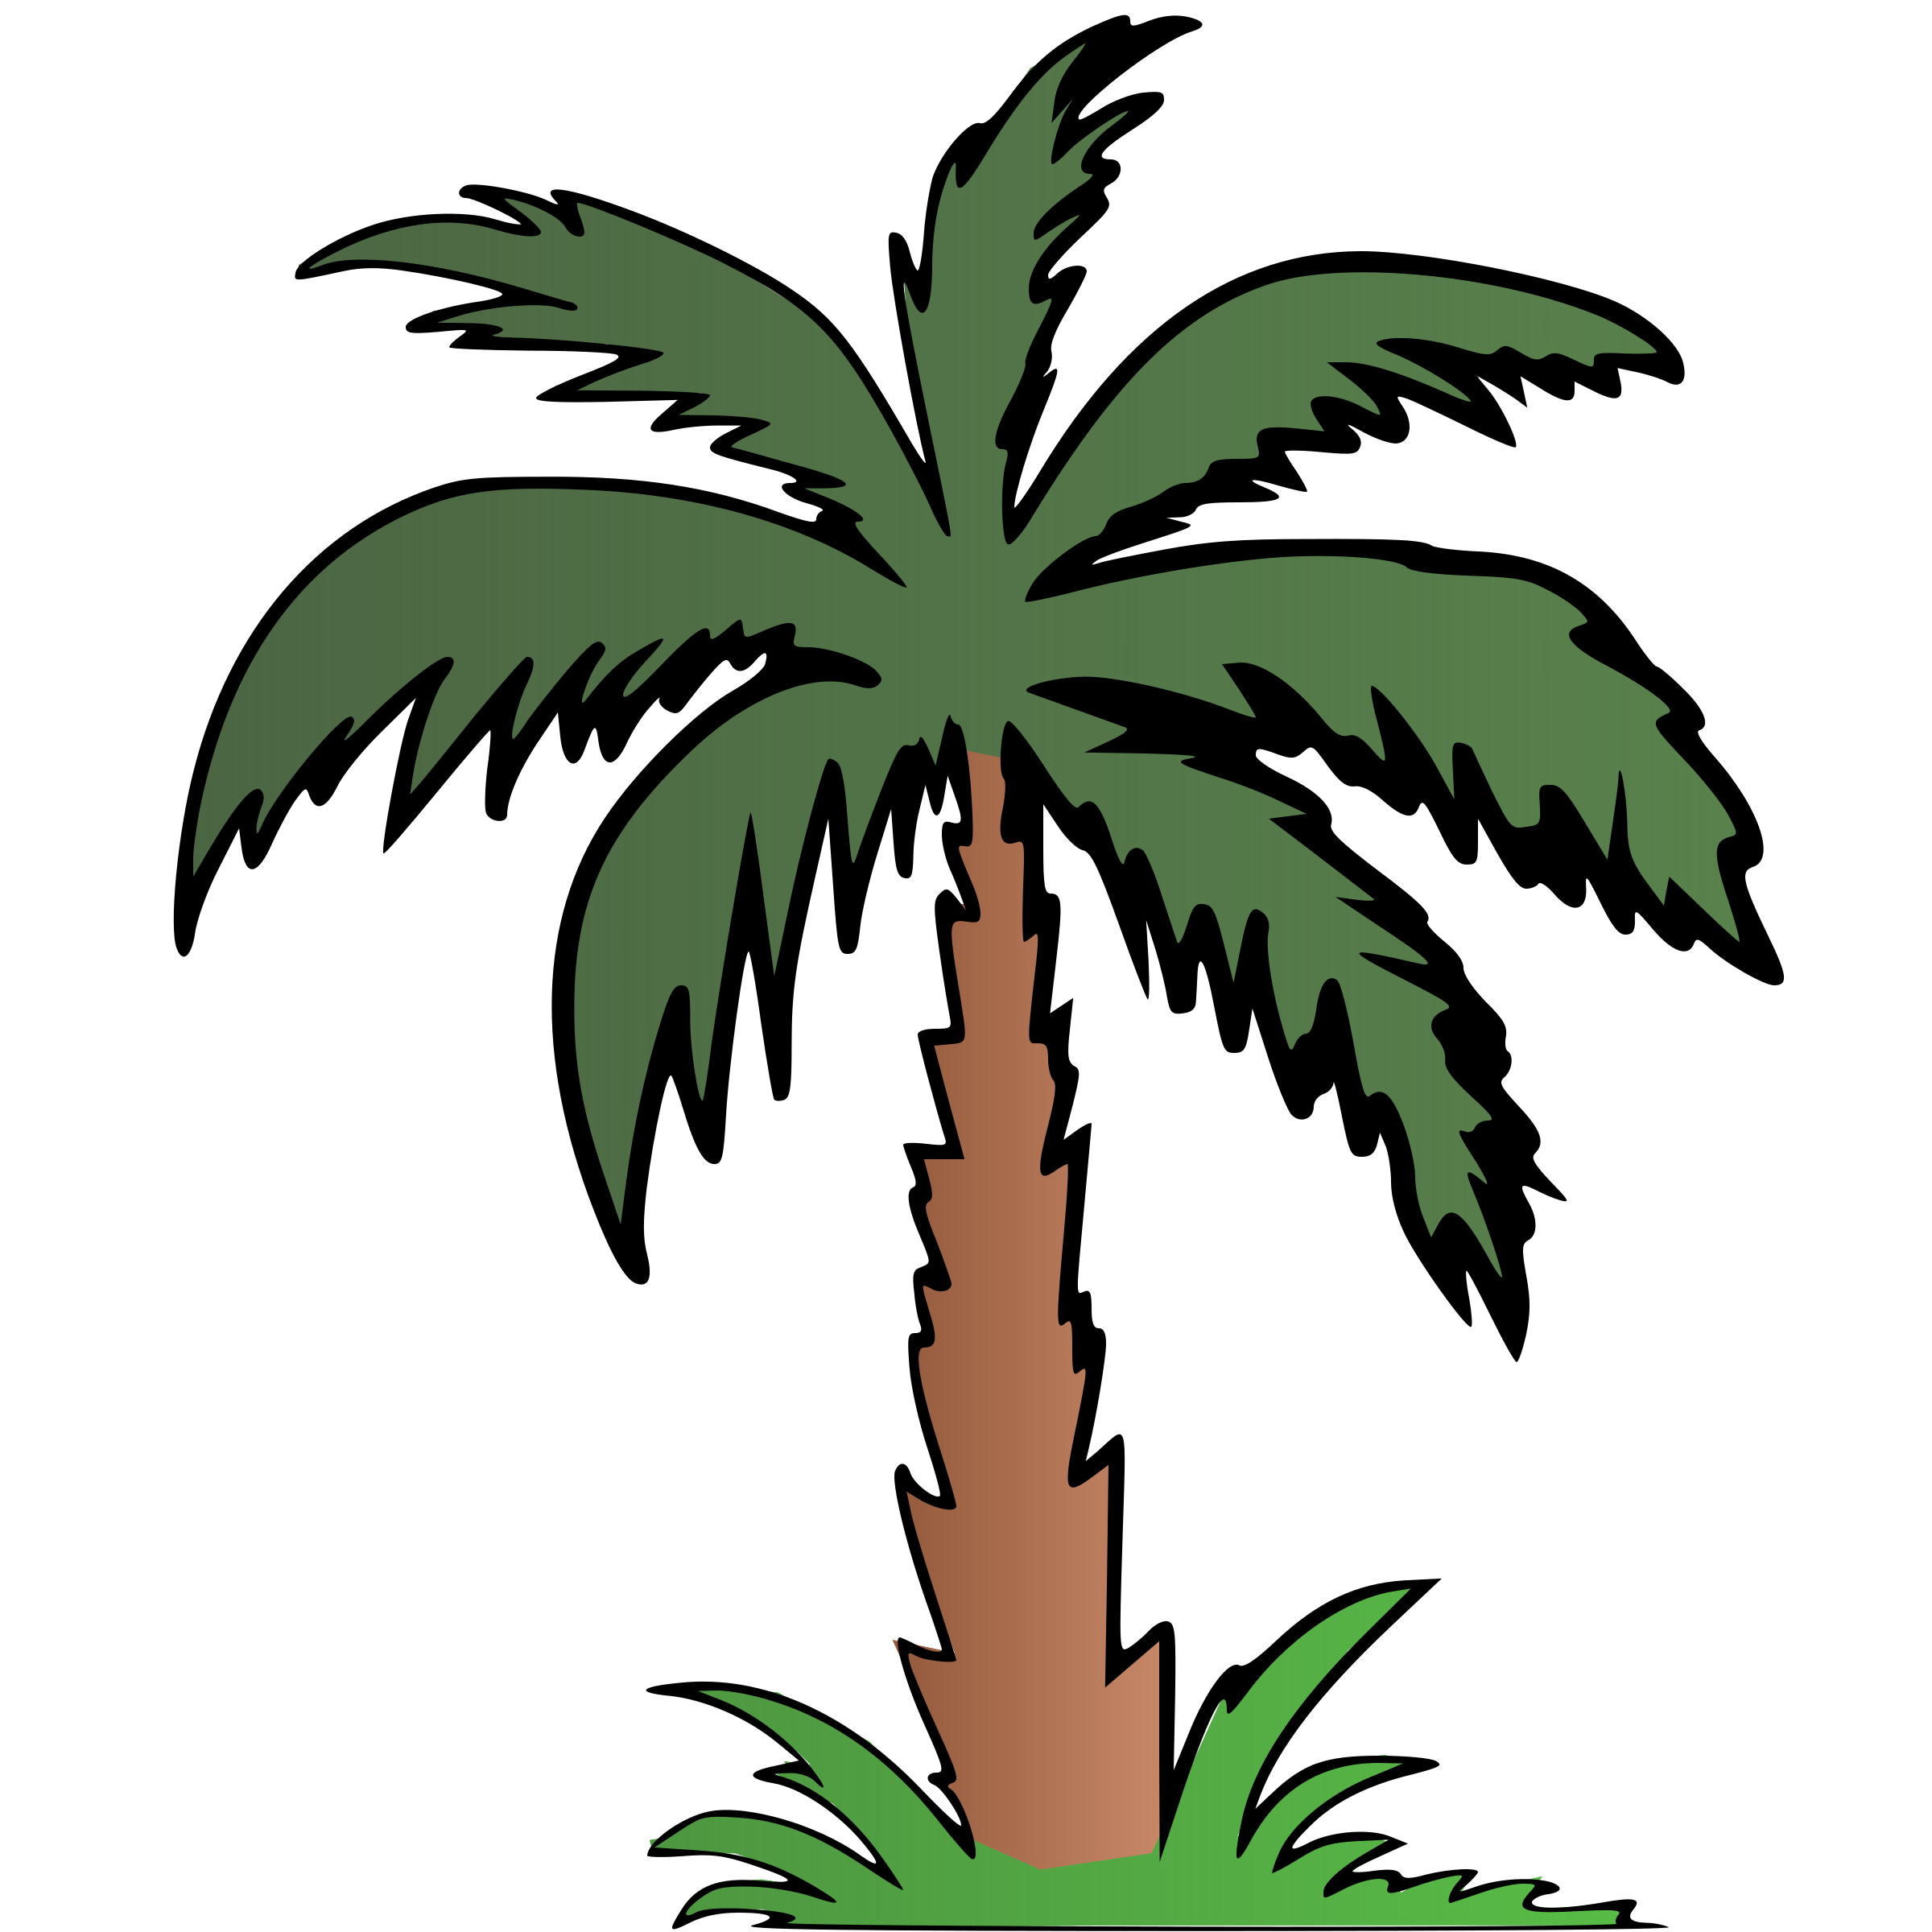 Clipart palm tree banner freeuse library Clipart - Palm Tree - Colour banner freeuse library